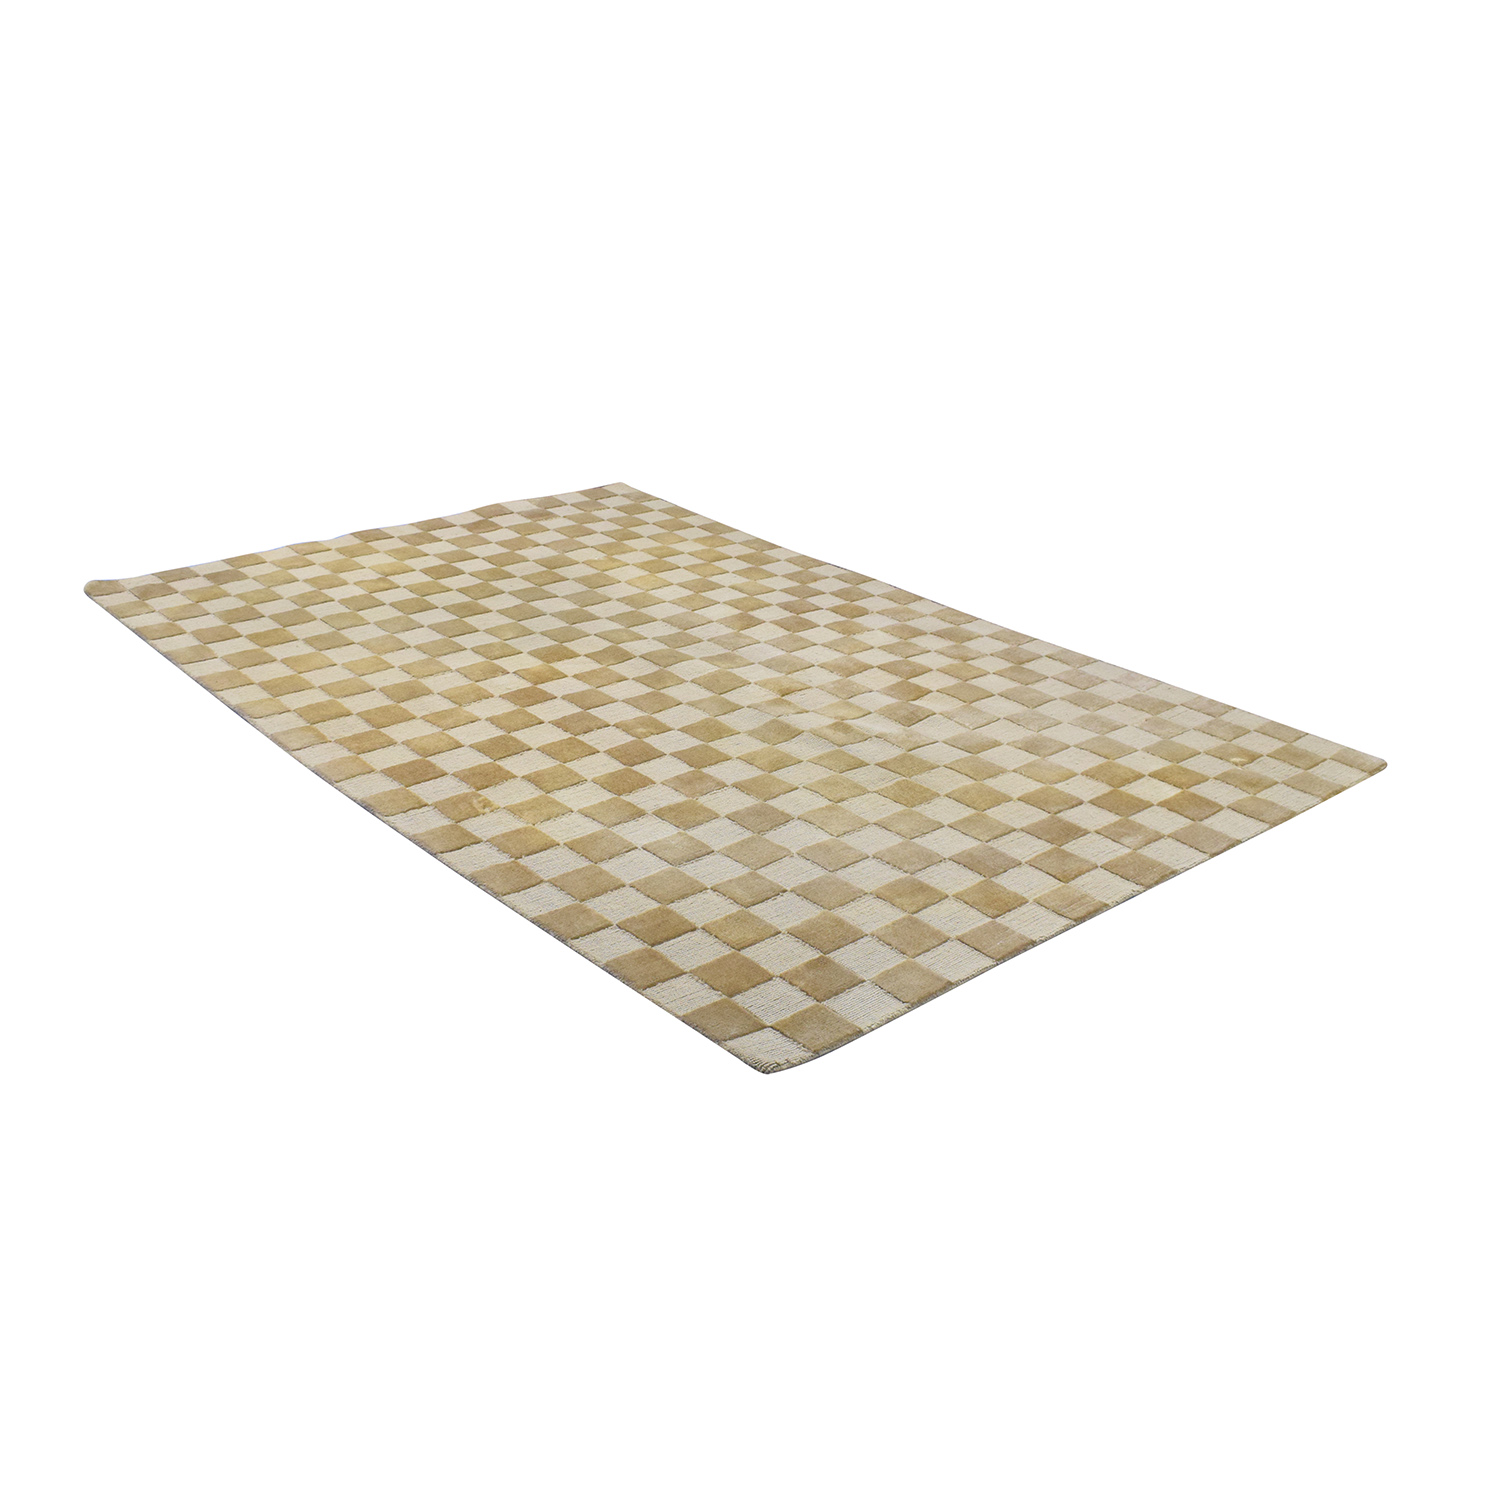 Macy's Macy's Patterned Area Rug for sale